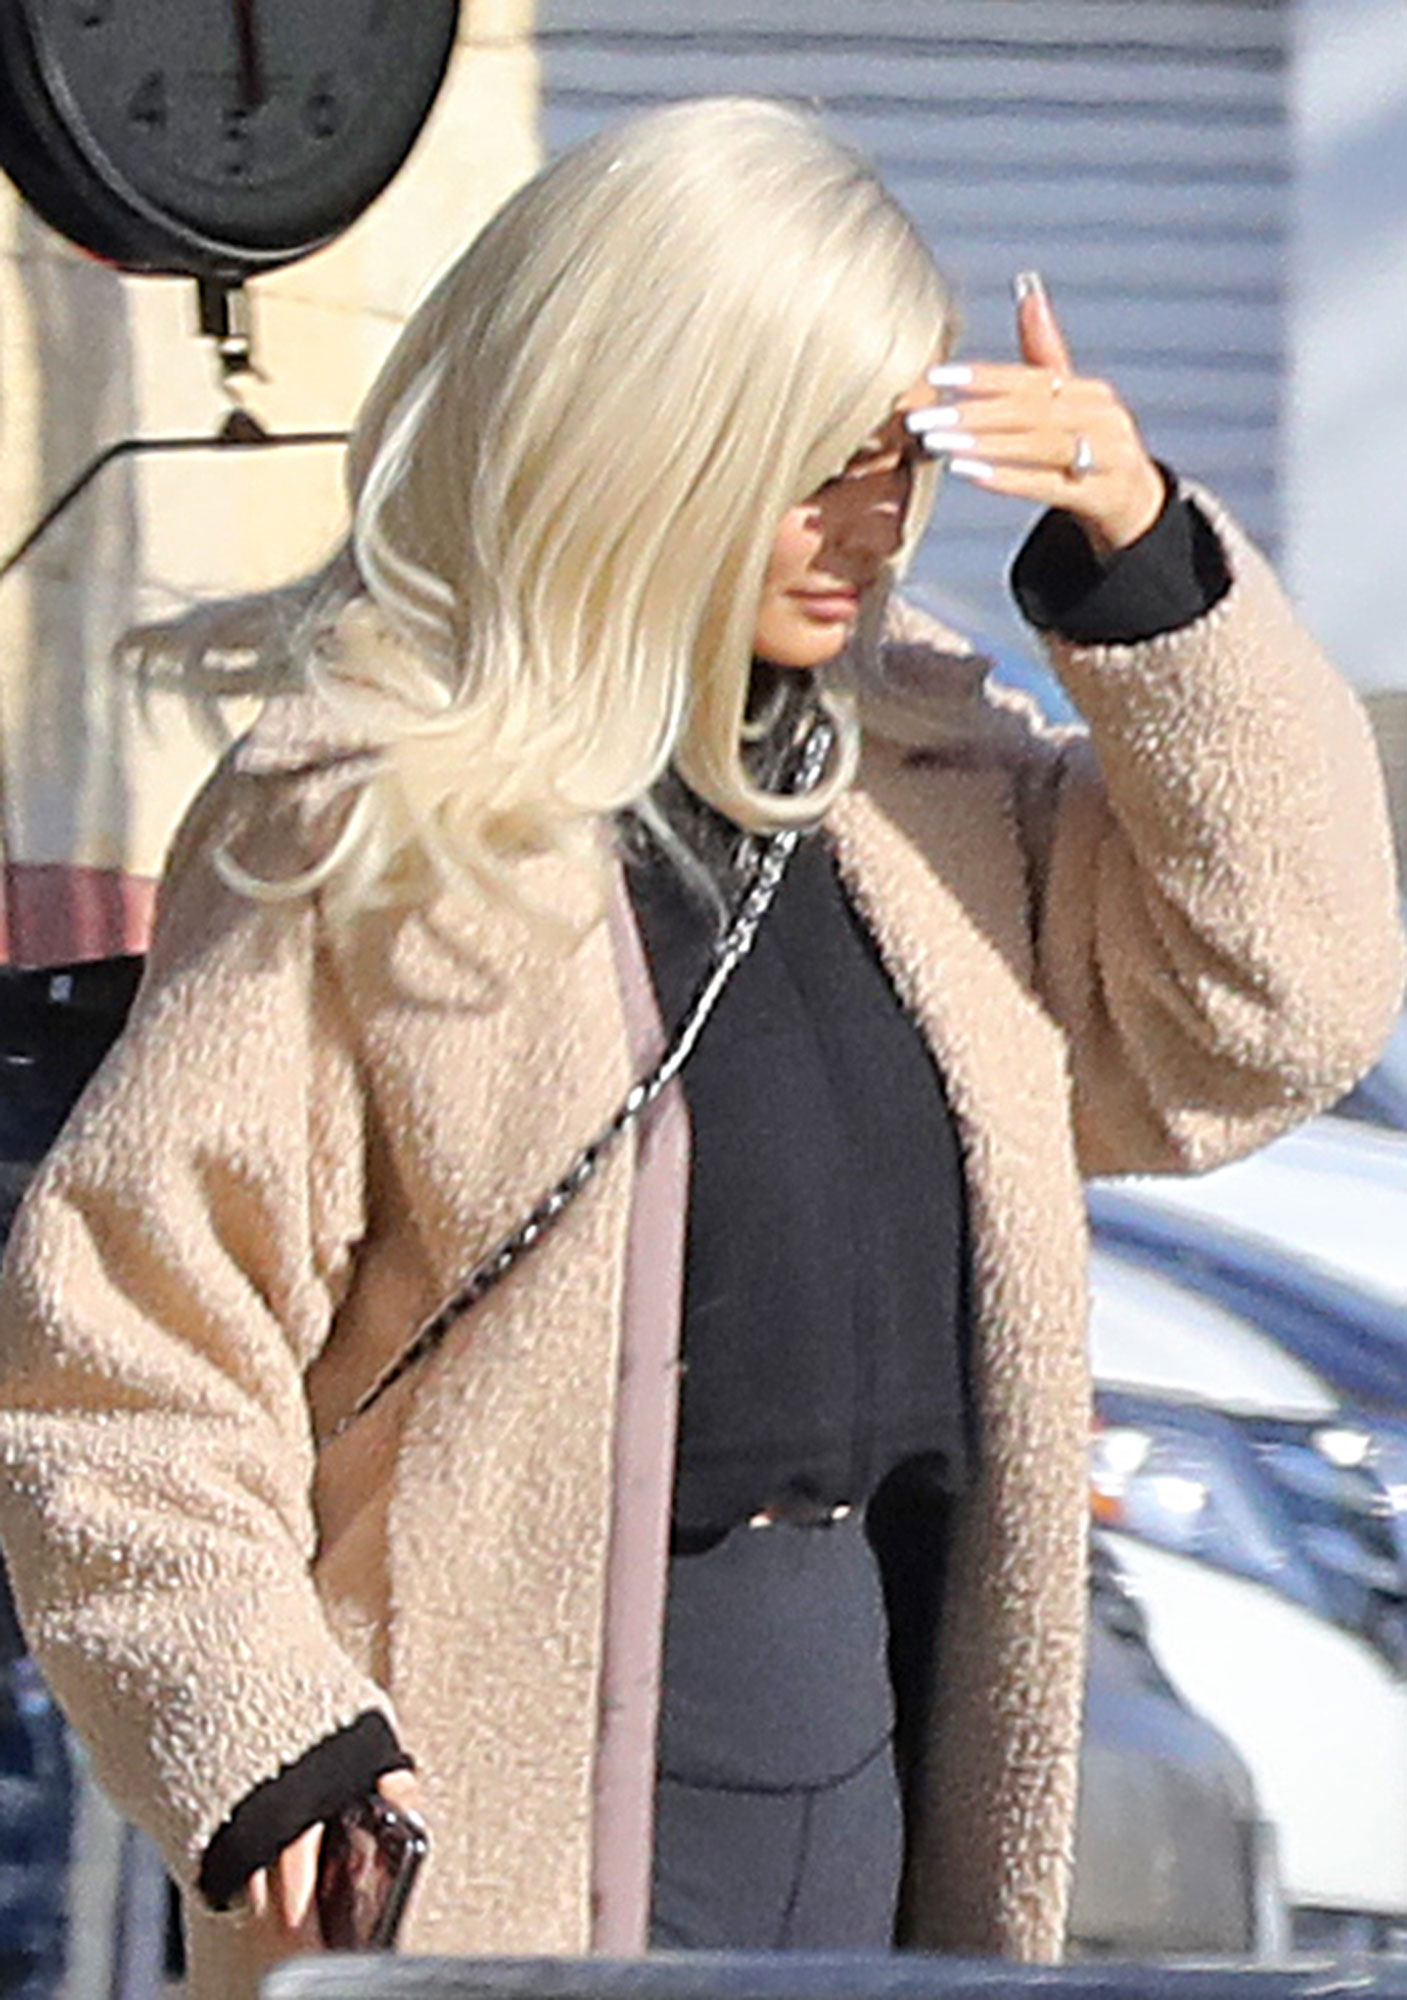 Kylie Jenner continues to fuel rumors she's engaged to Travis Scott as she steps out with a diamond ring on her wedding finger.